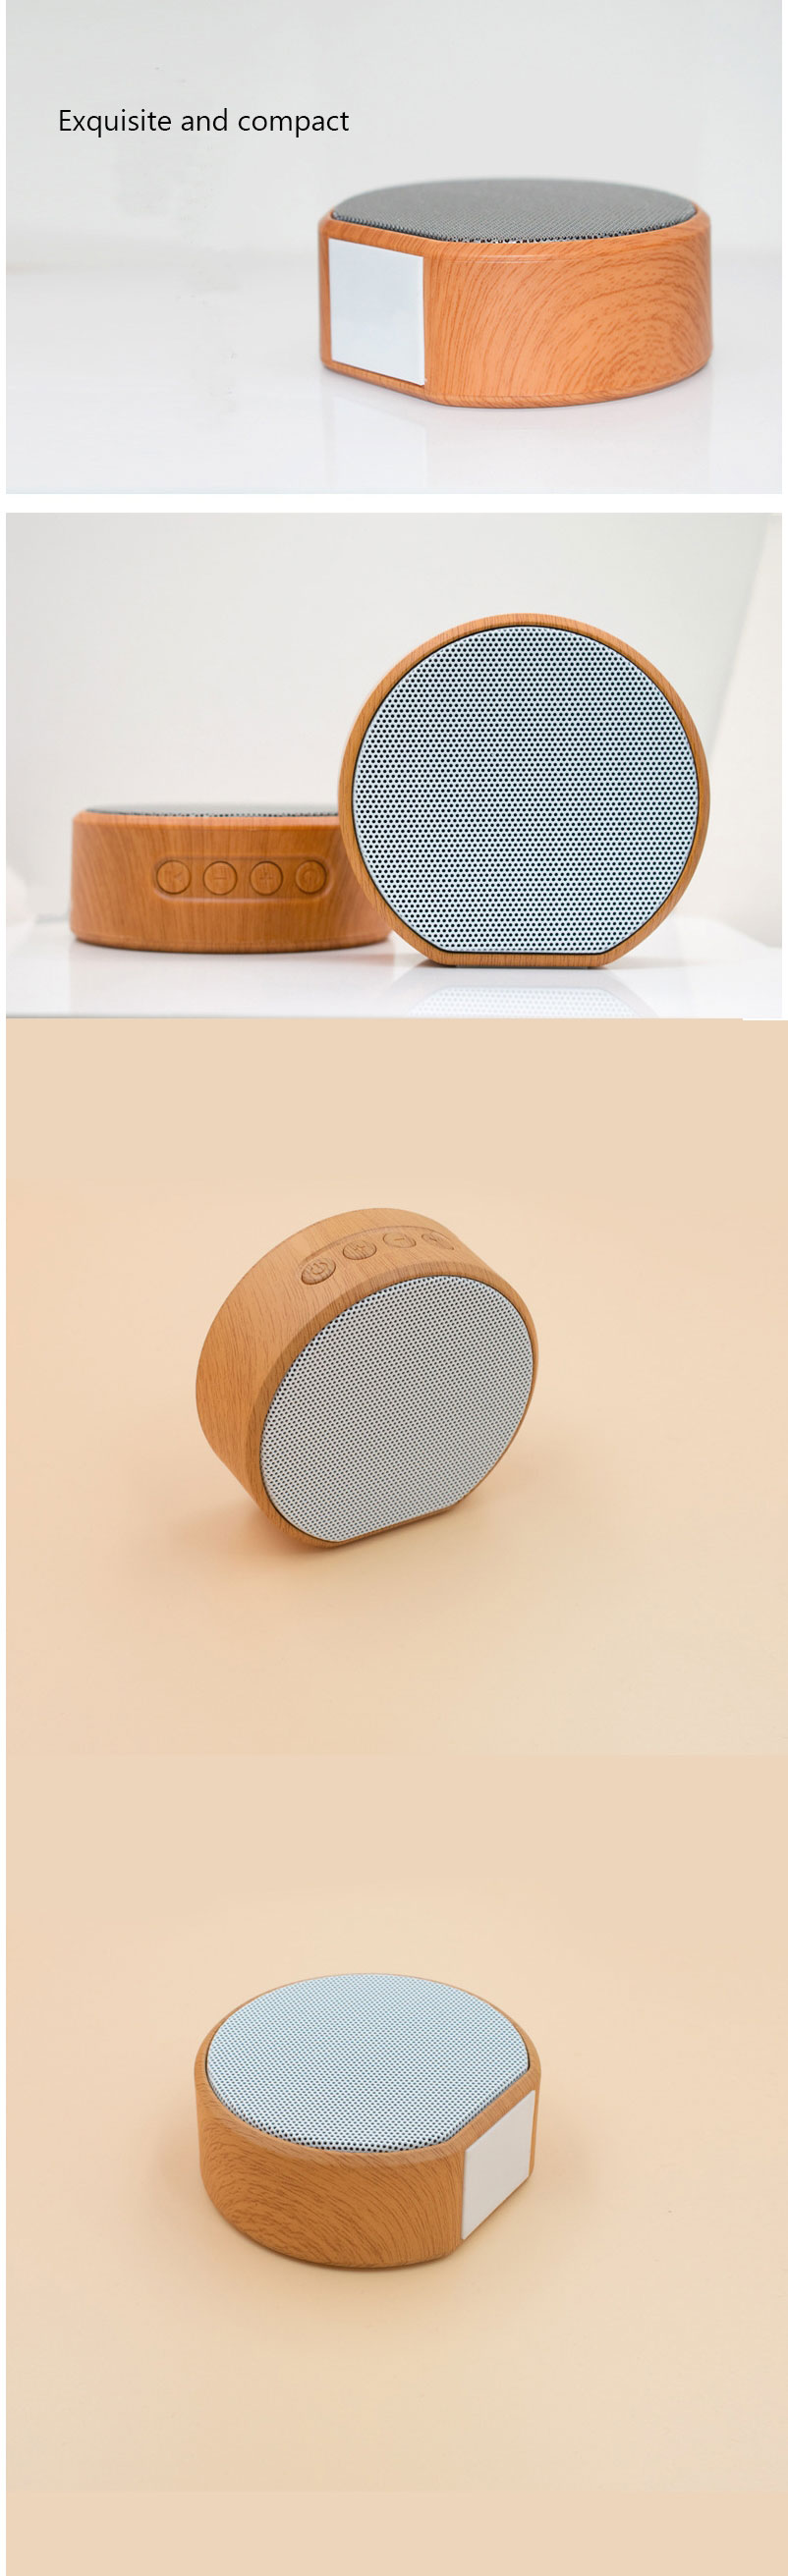 A60-Bluetooth-Speaker-Portable-Wireless-Woo_01 (3)